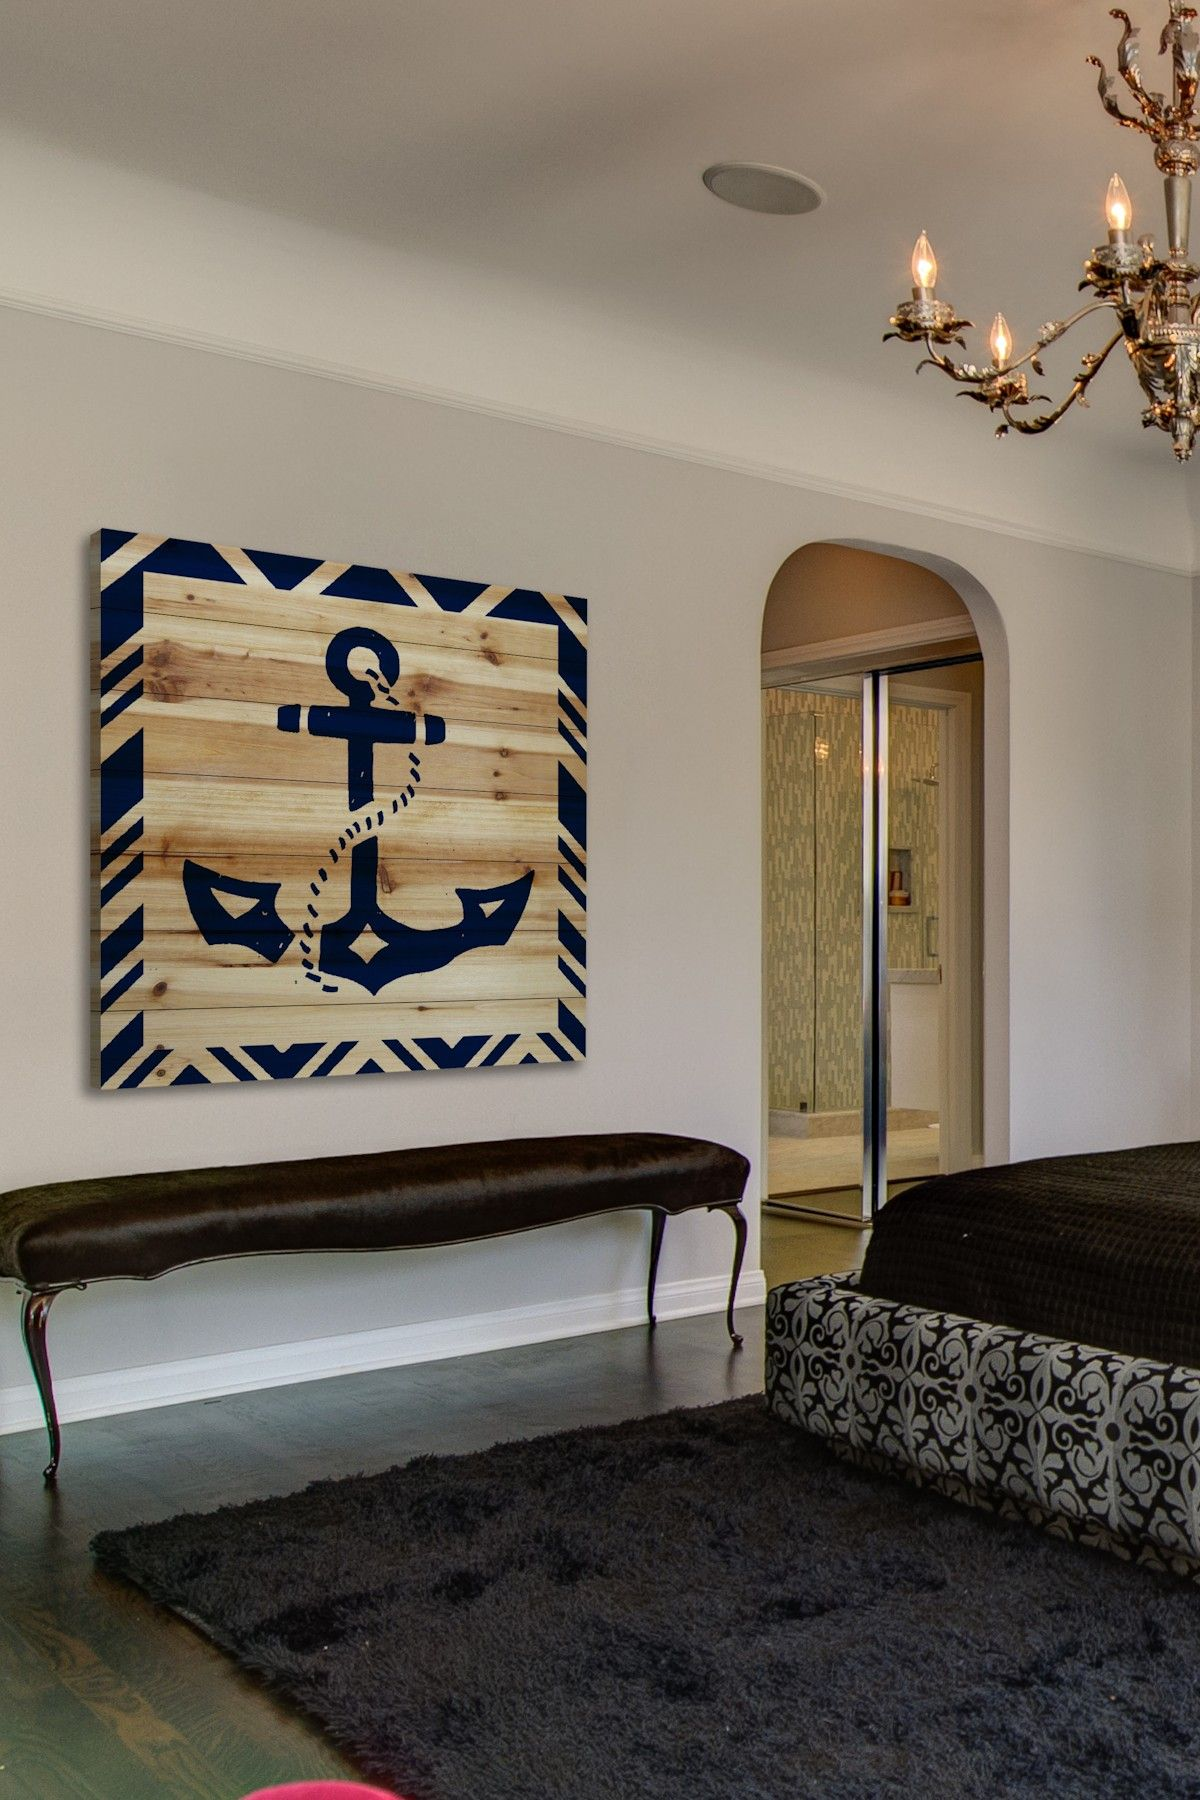 Decorating With Wall Art Diy Idea For A Large Nautical Wall Decor Piece Anchor